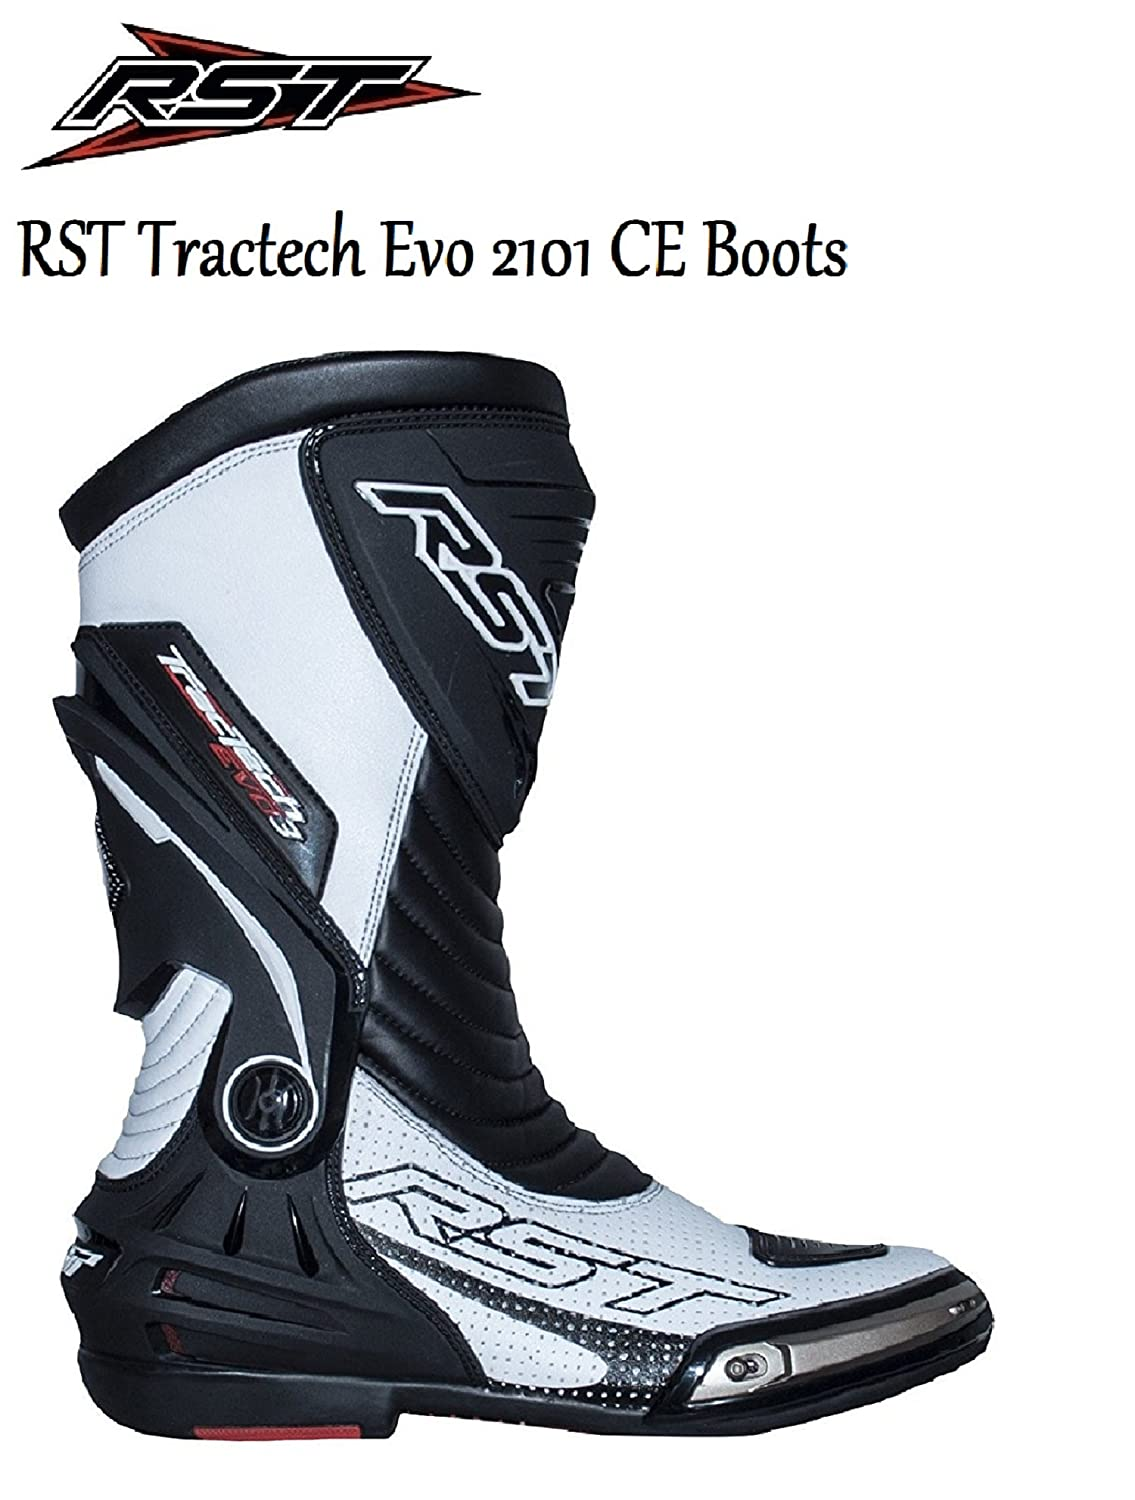 RST TracTech Evo CE 2101 Boots New 2019 Motorcycle Boots